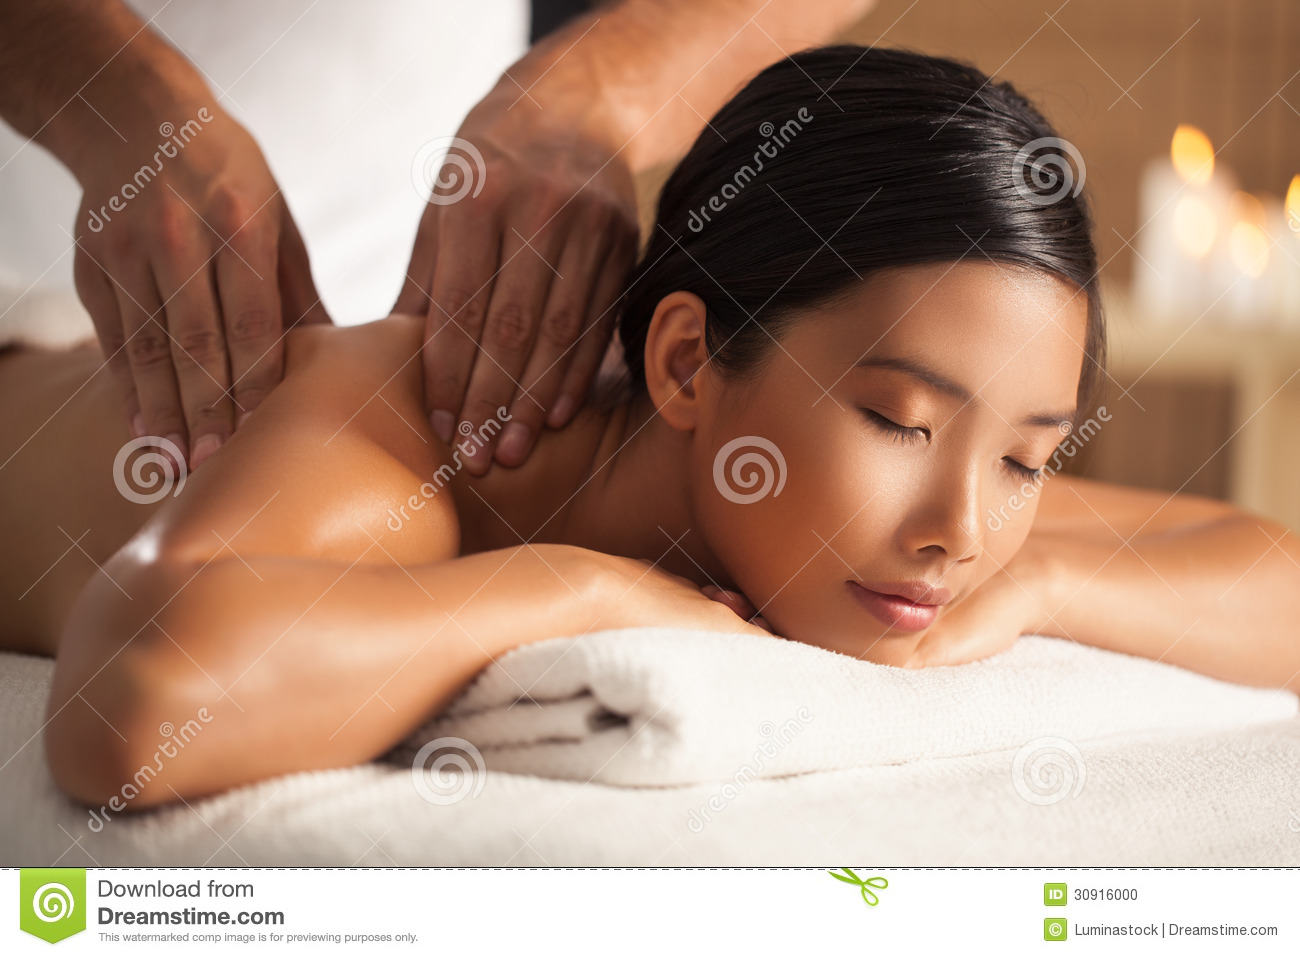 thaimassage eslöv cock ring